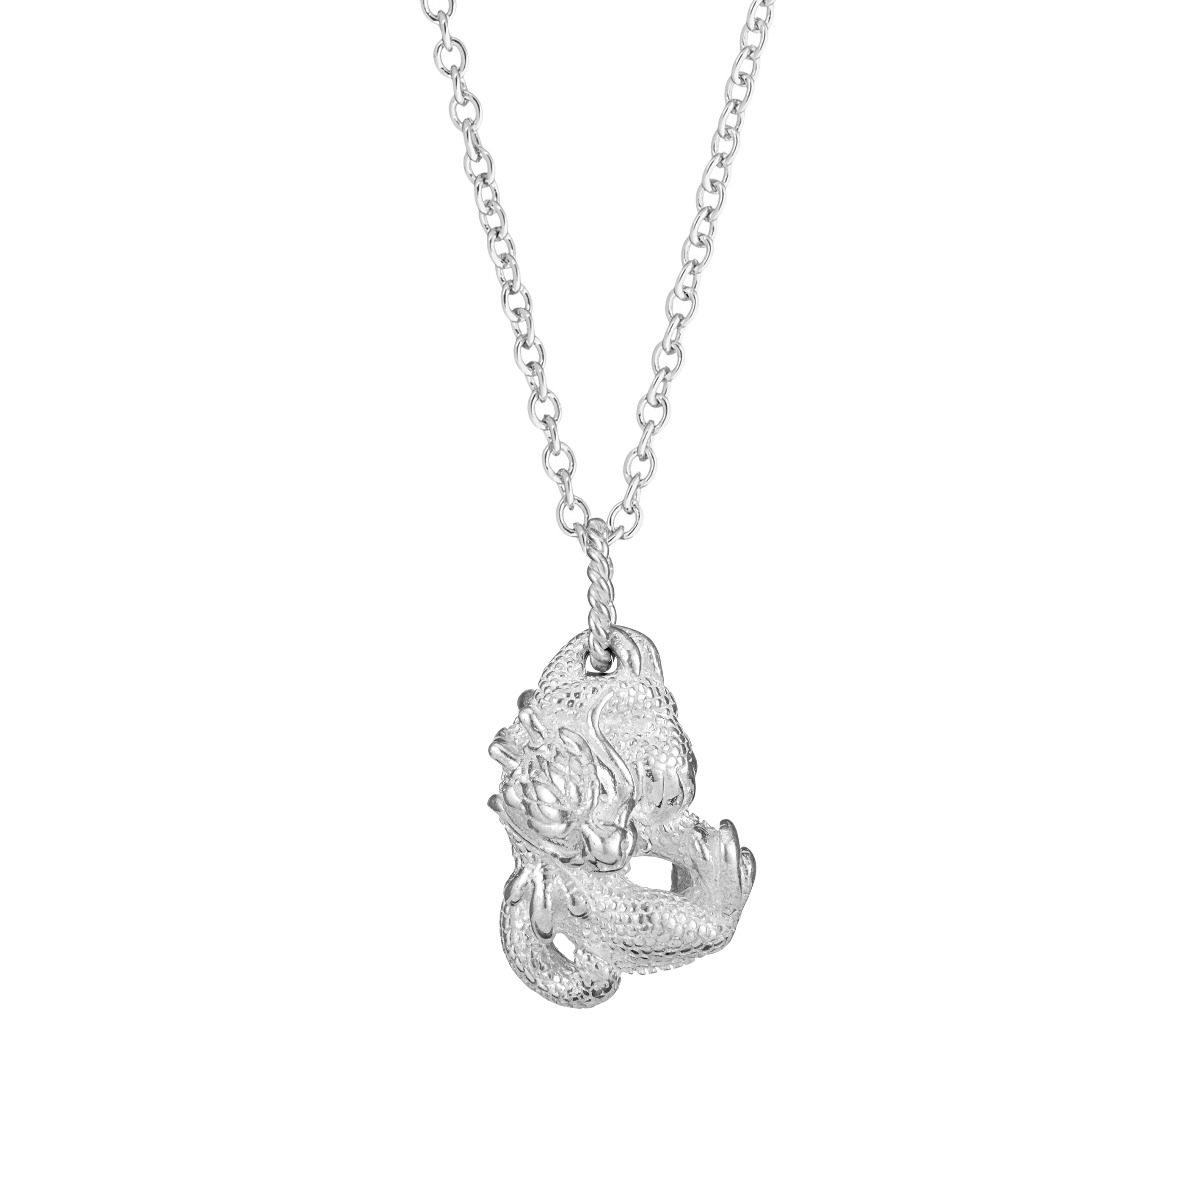 Chinese zodiac pendant necklace (dragon)